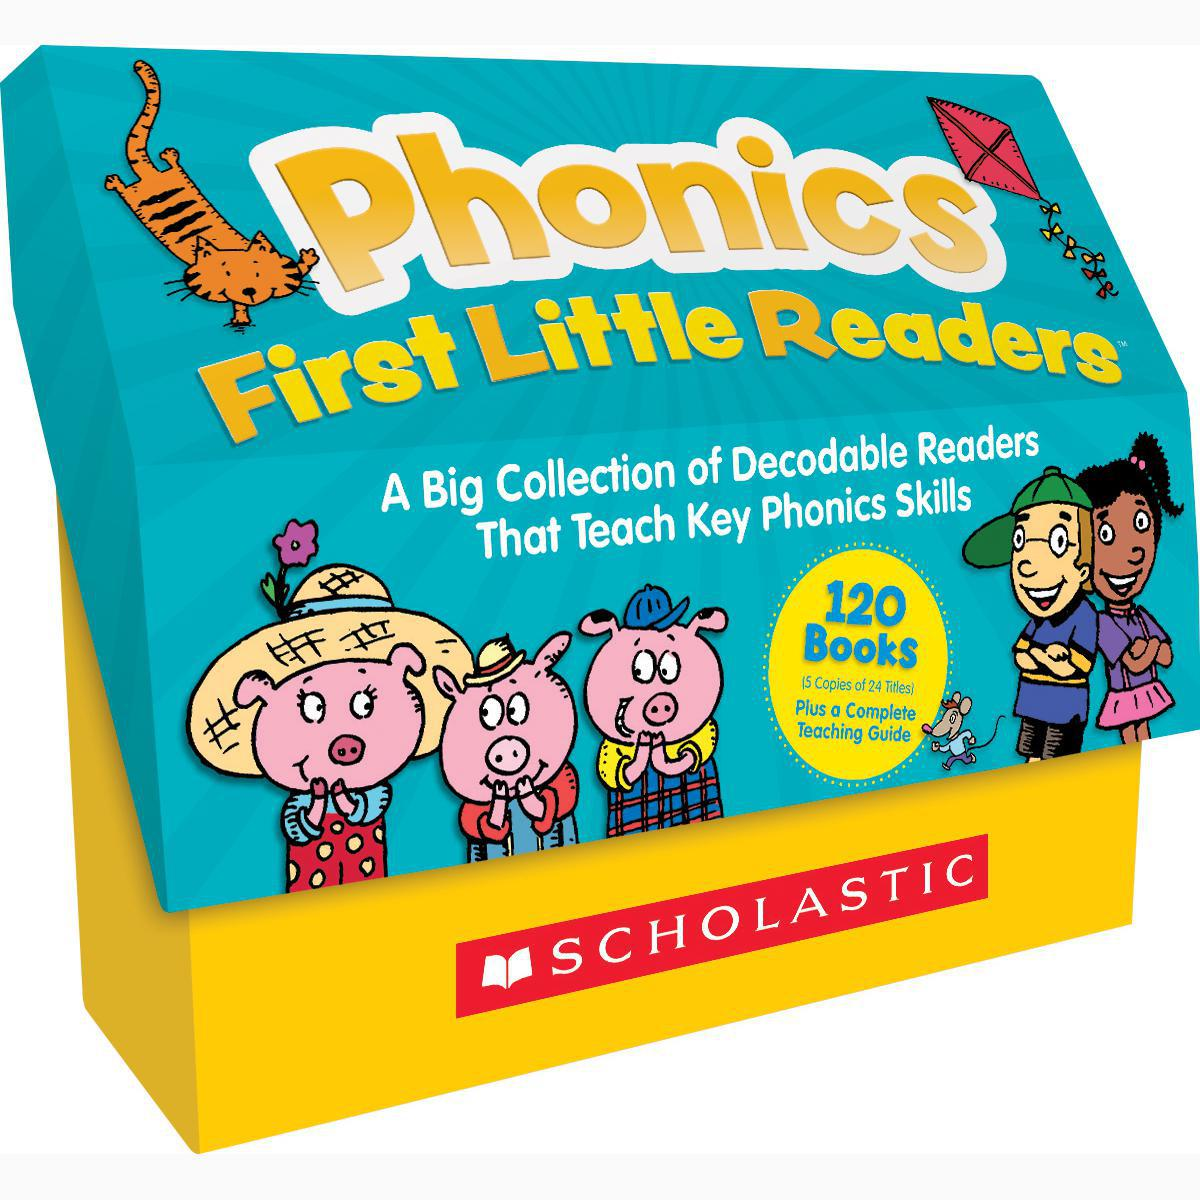 Phonics First Little Readers: A Big Collection of Decodable Readers That Teach Key Phonics Skills